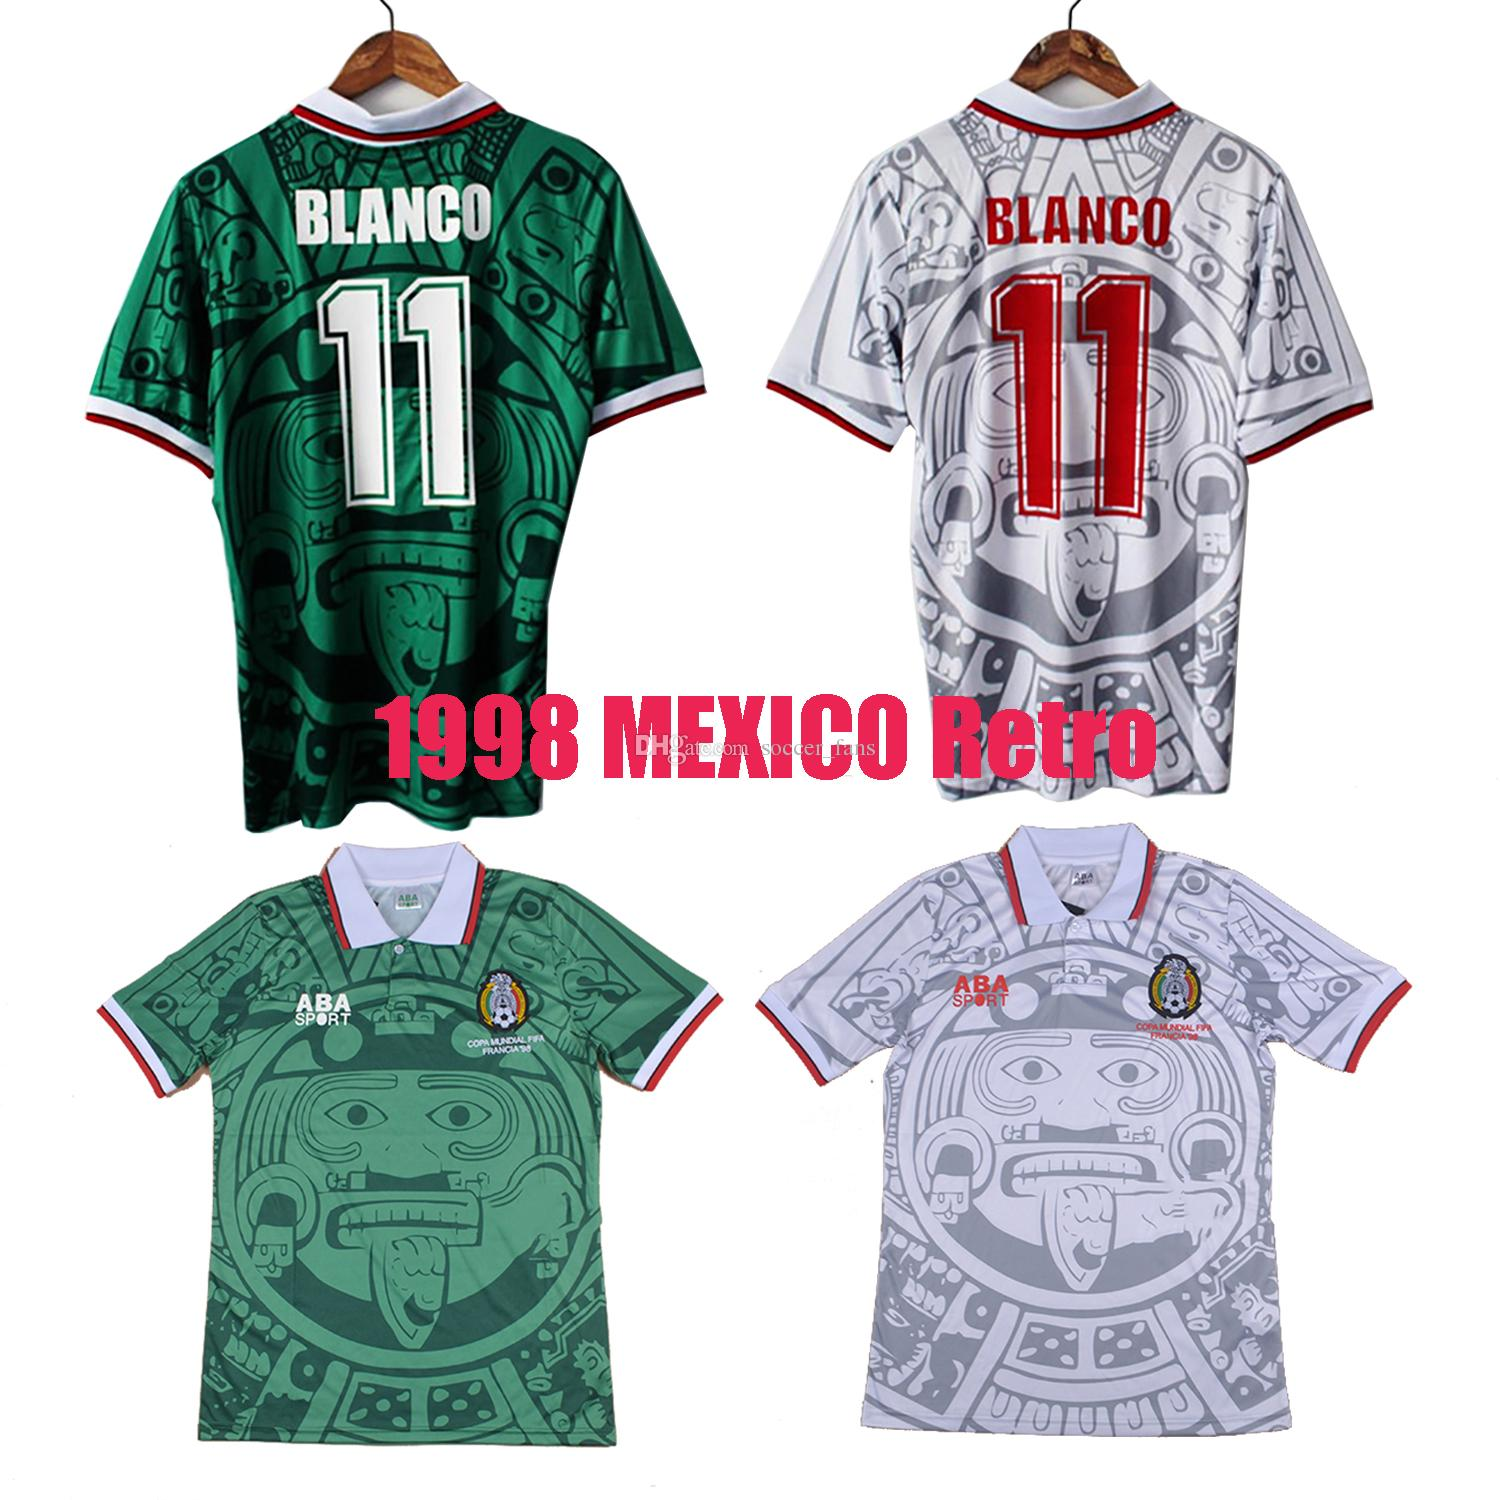 cea4606af9b 2019 1998 MEXICO RETRO VINTAGE BLANCO Thailand Quality Soccer Jerseys  Uniforms Football Jerseys Shirt Embroidery Logo Camiseta Futbol From  Soccer_fans, ...